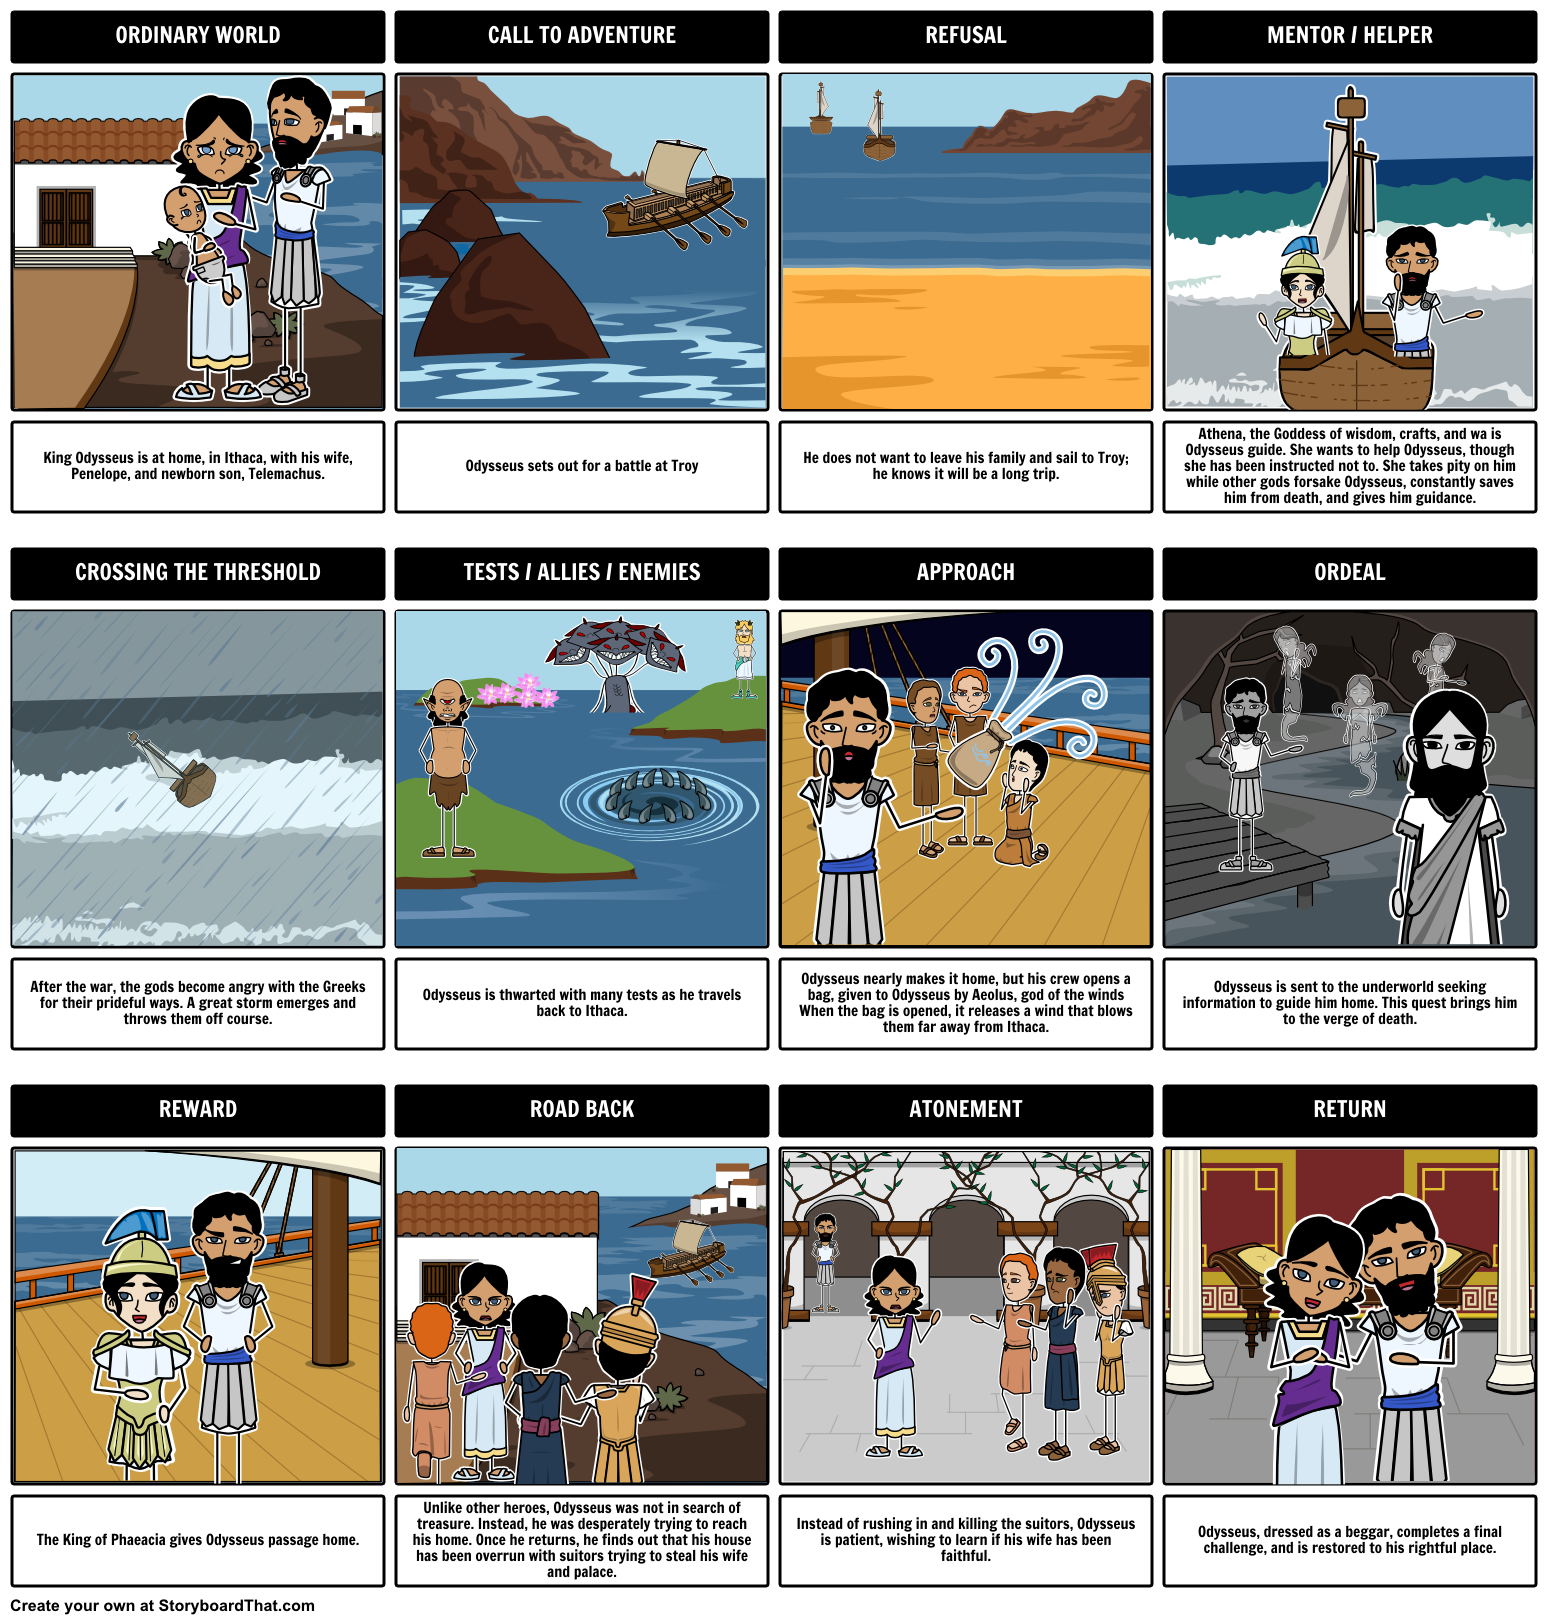 medium resolution of build a colorful hero s journey diagram using storyboard that for the odyssey view the full